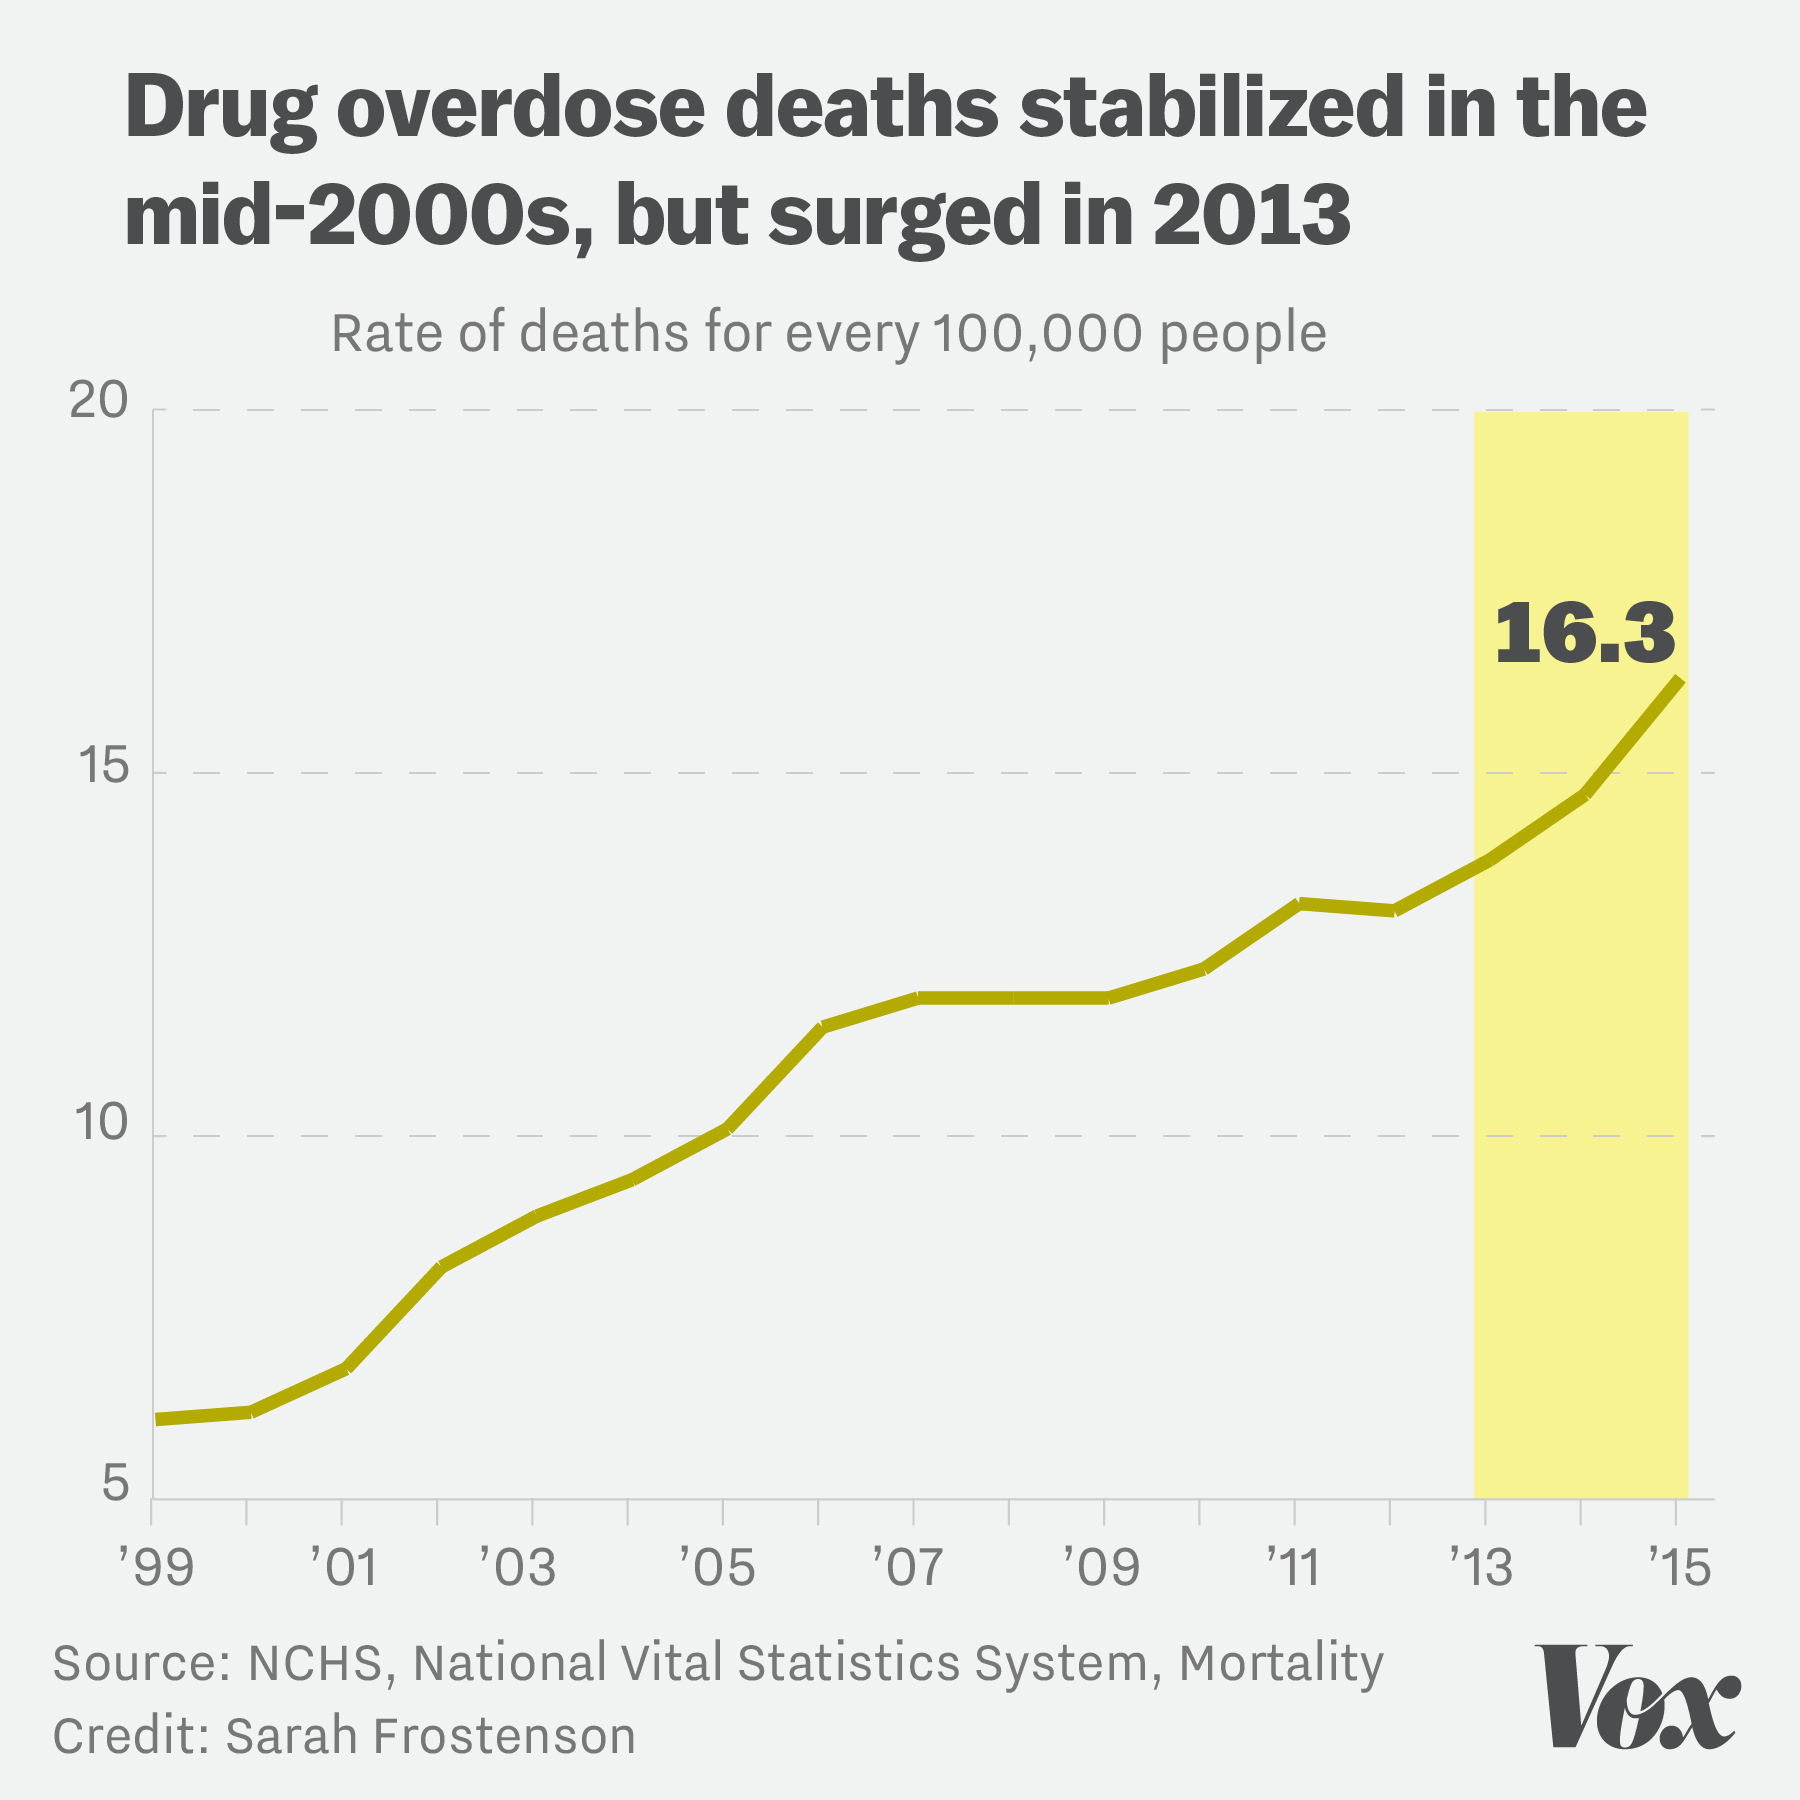 Surge in opioid epidemic death rate continues, hitting 2.5-fold increase